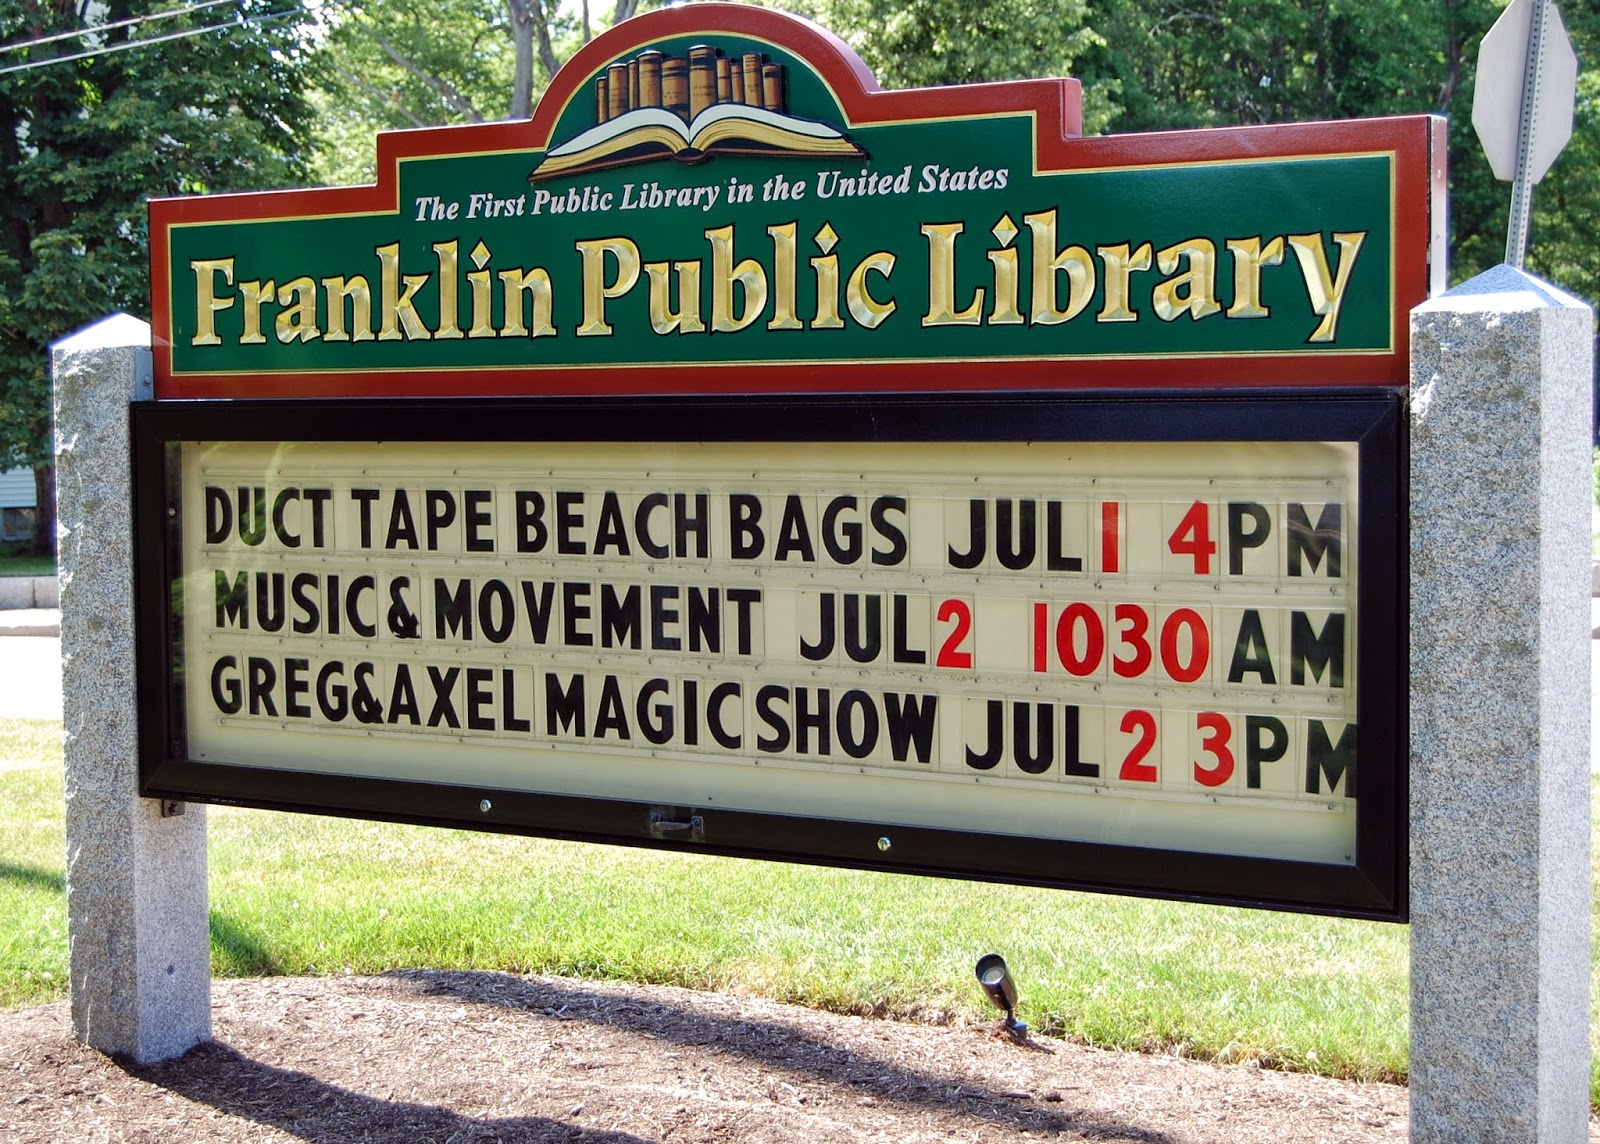 Franklin Public Library schedule for the week